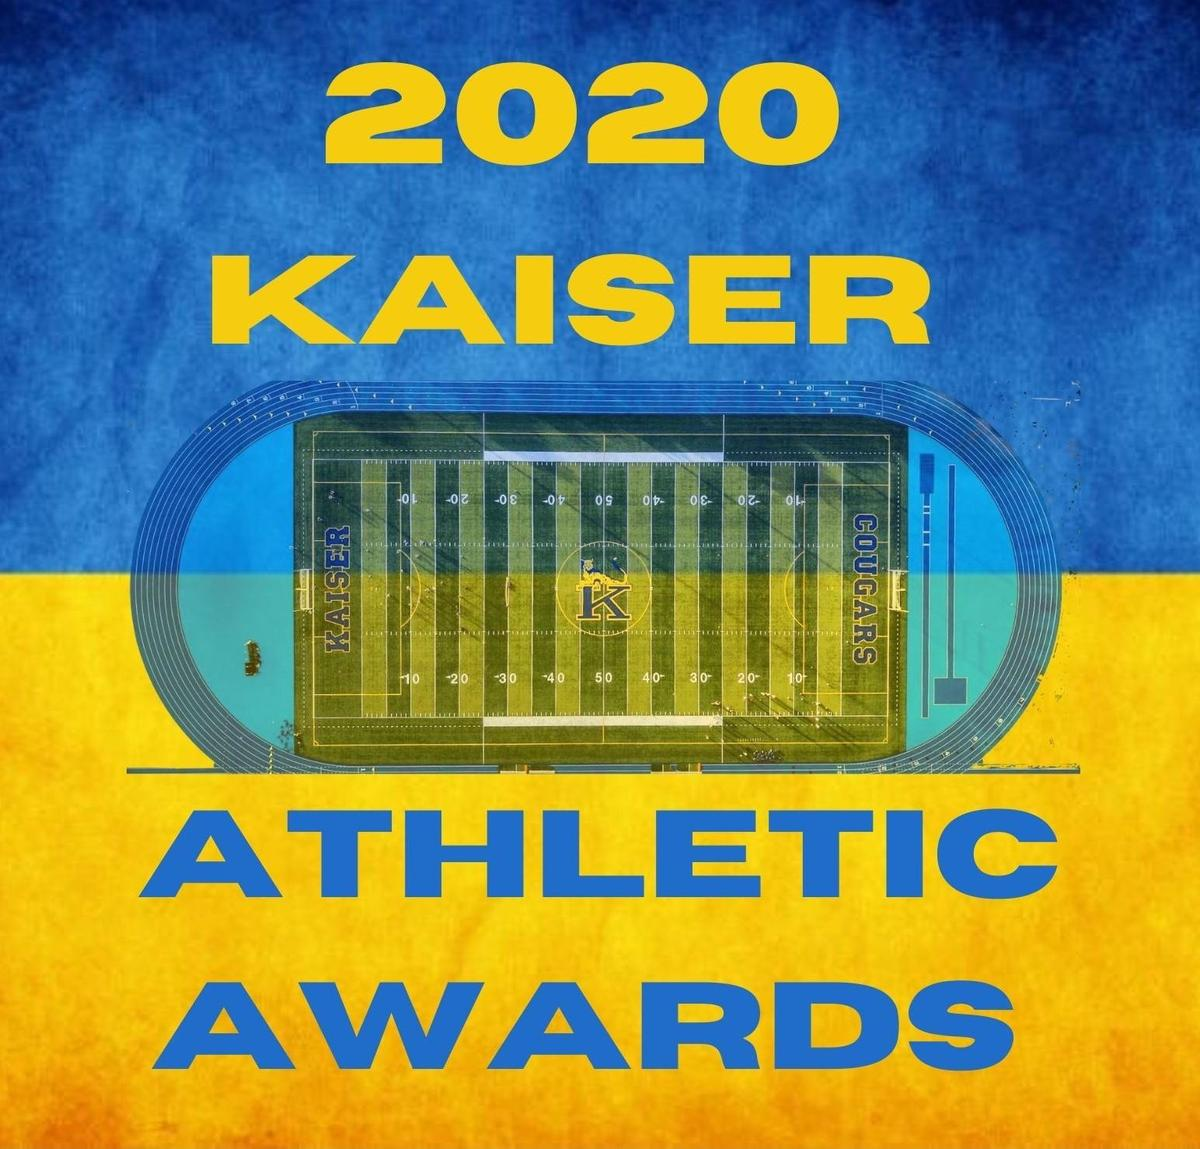 2020 Athletic Awards image